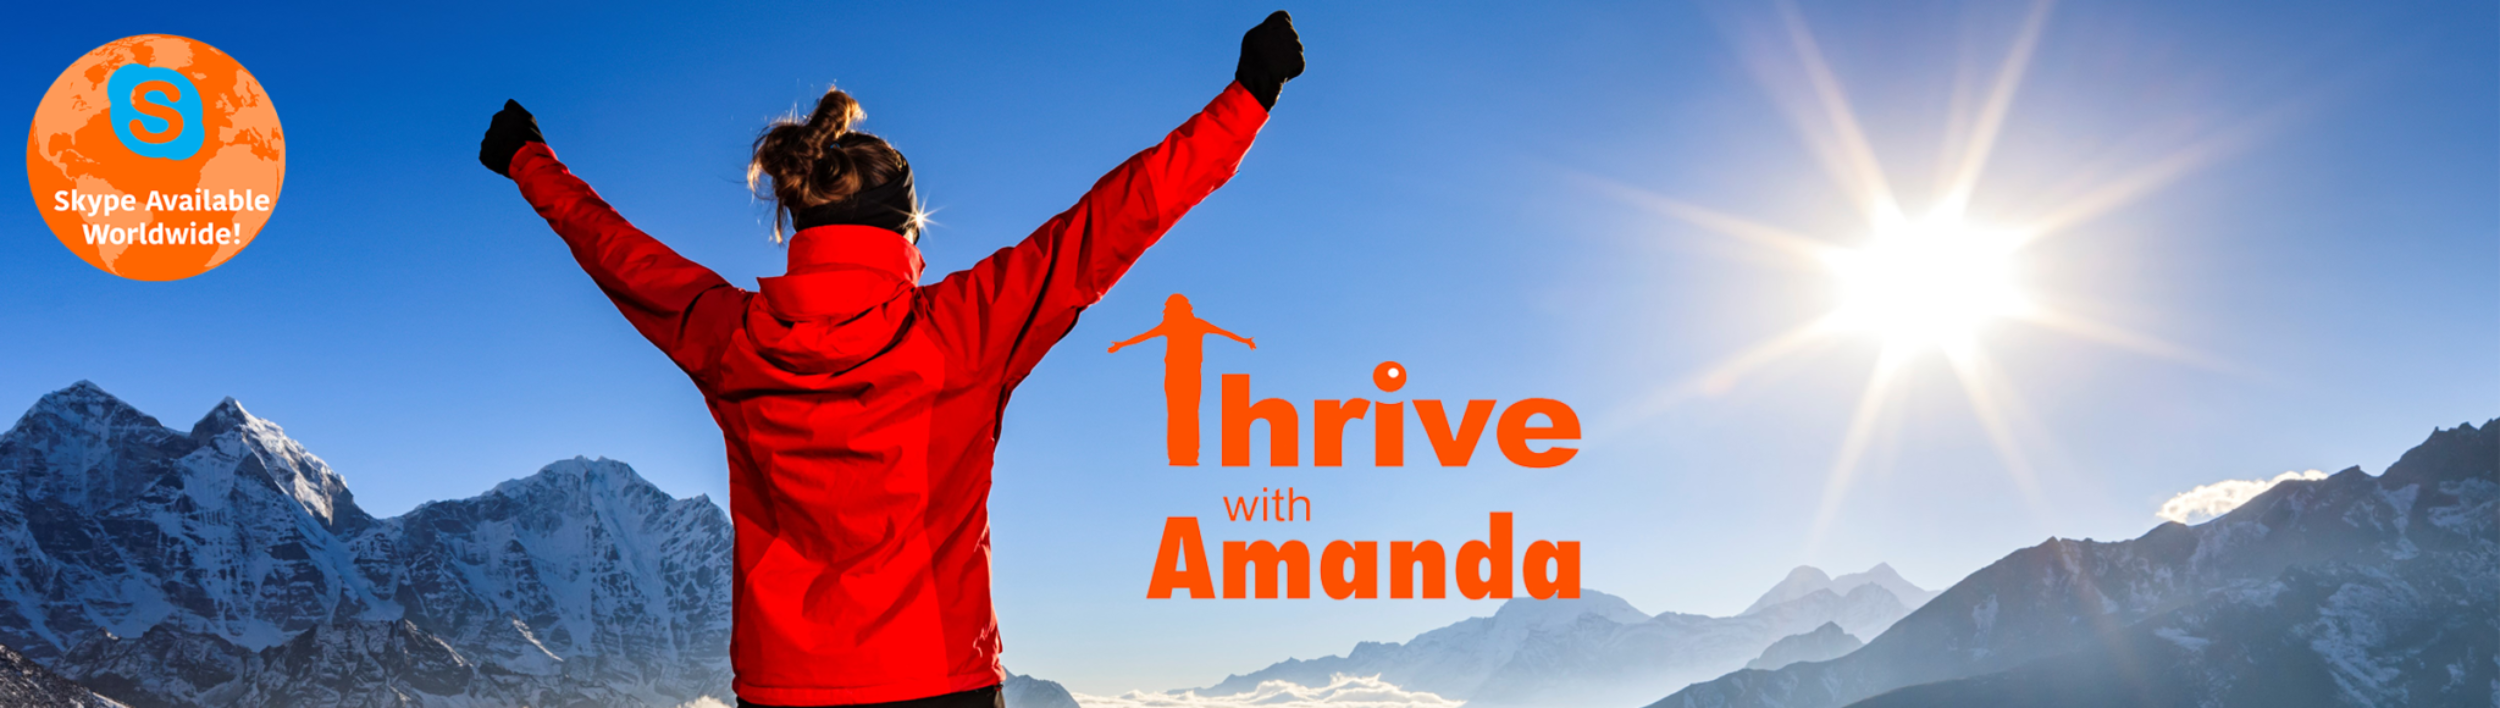 Thrive with Amanda